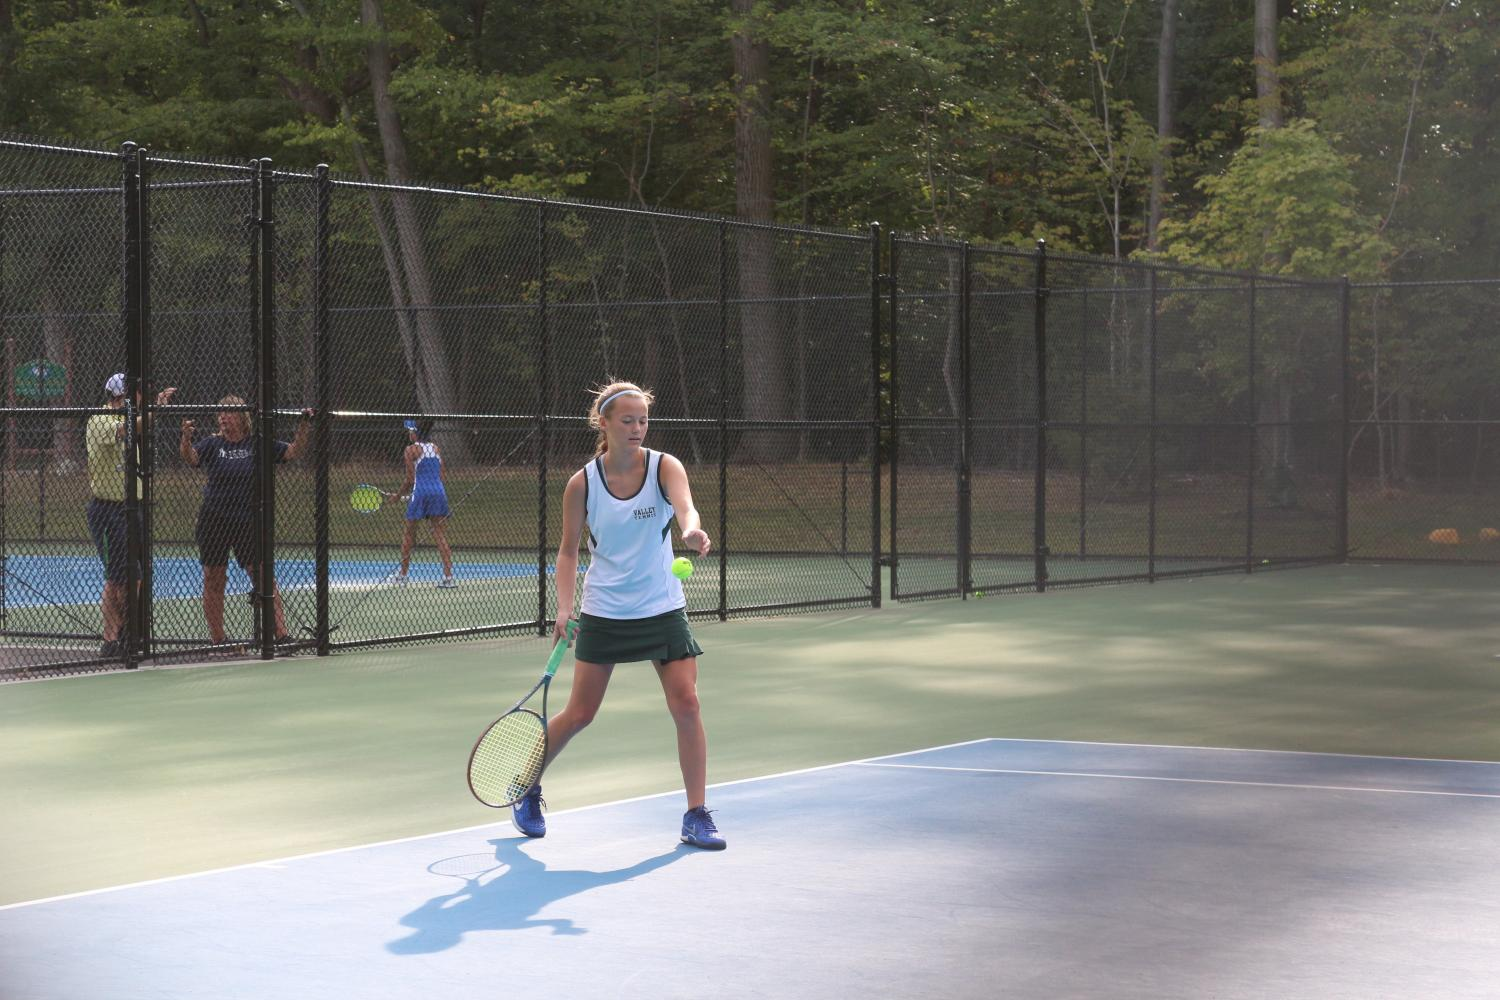 Melanie Brentnall prepares to hit the ball during a match last season. Brentnall will play second singles this season.